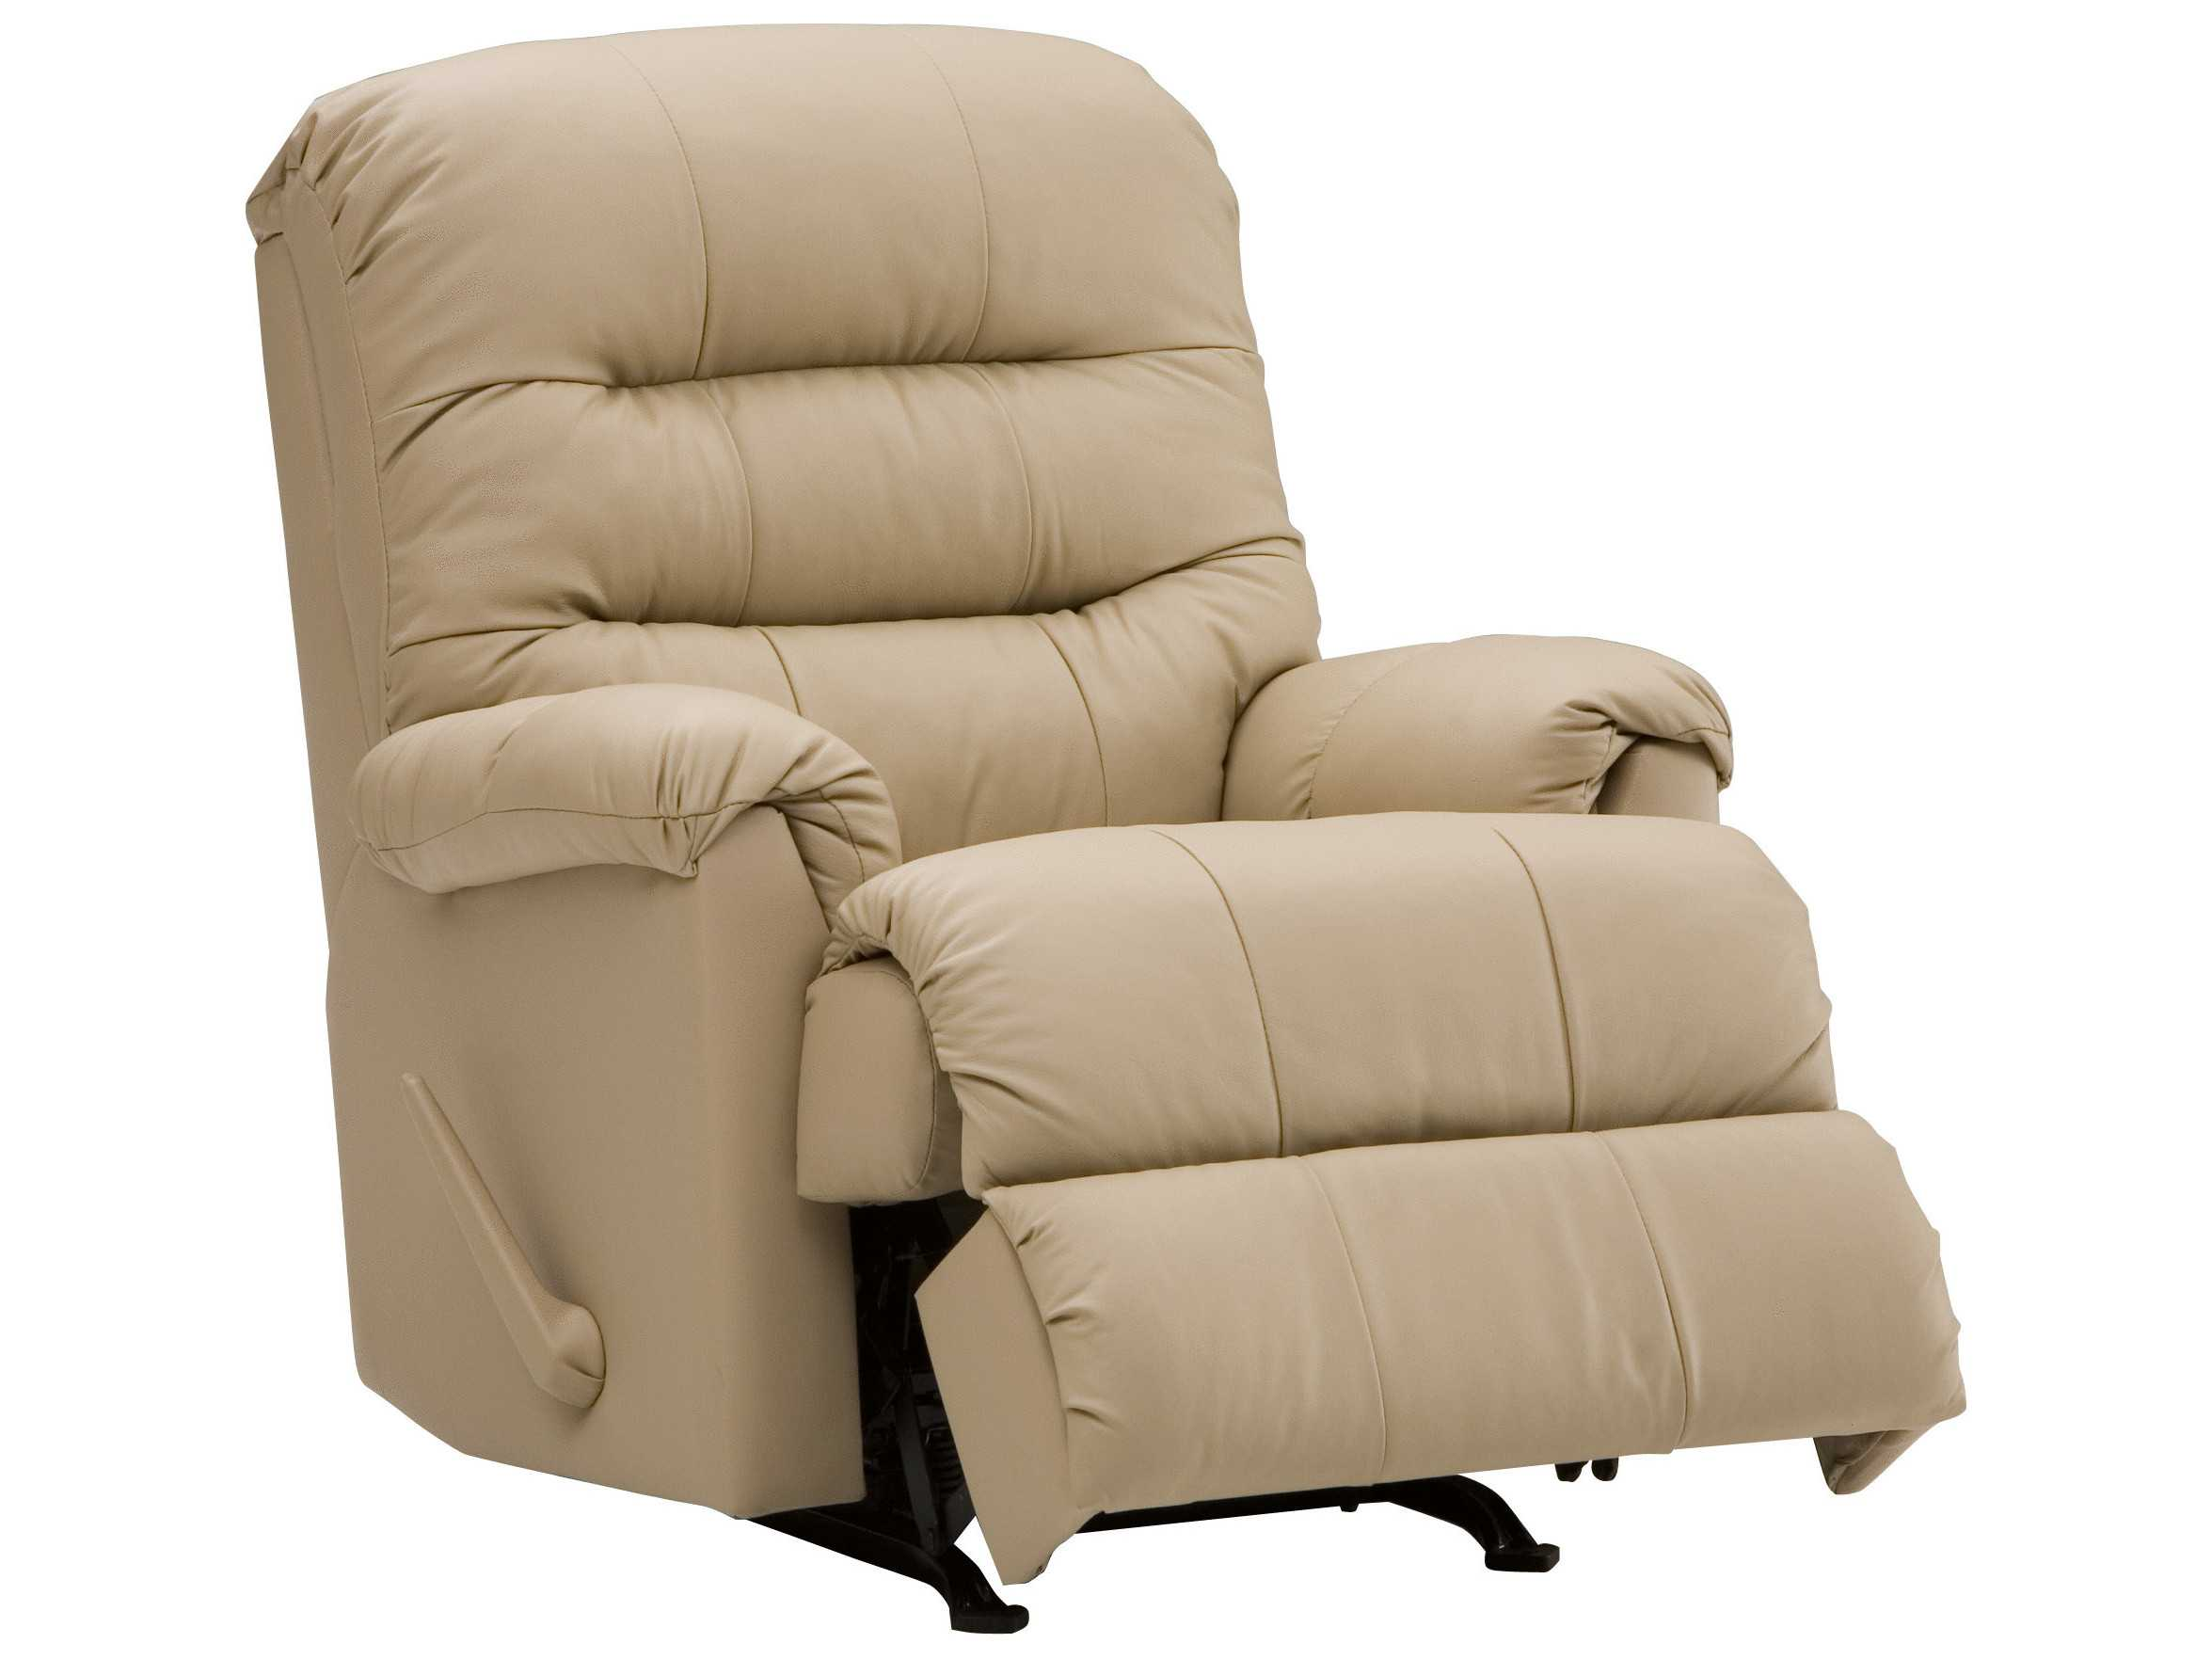 Palliser Columbus Rocker Recliner Chair Pl4311632